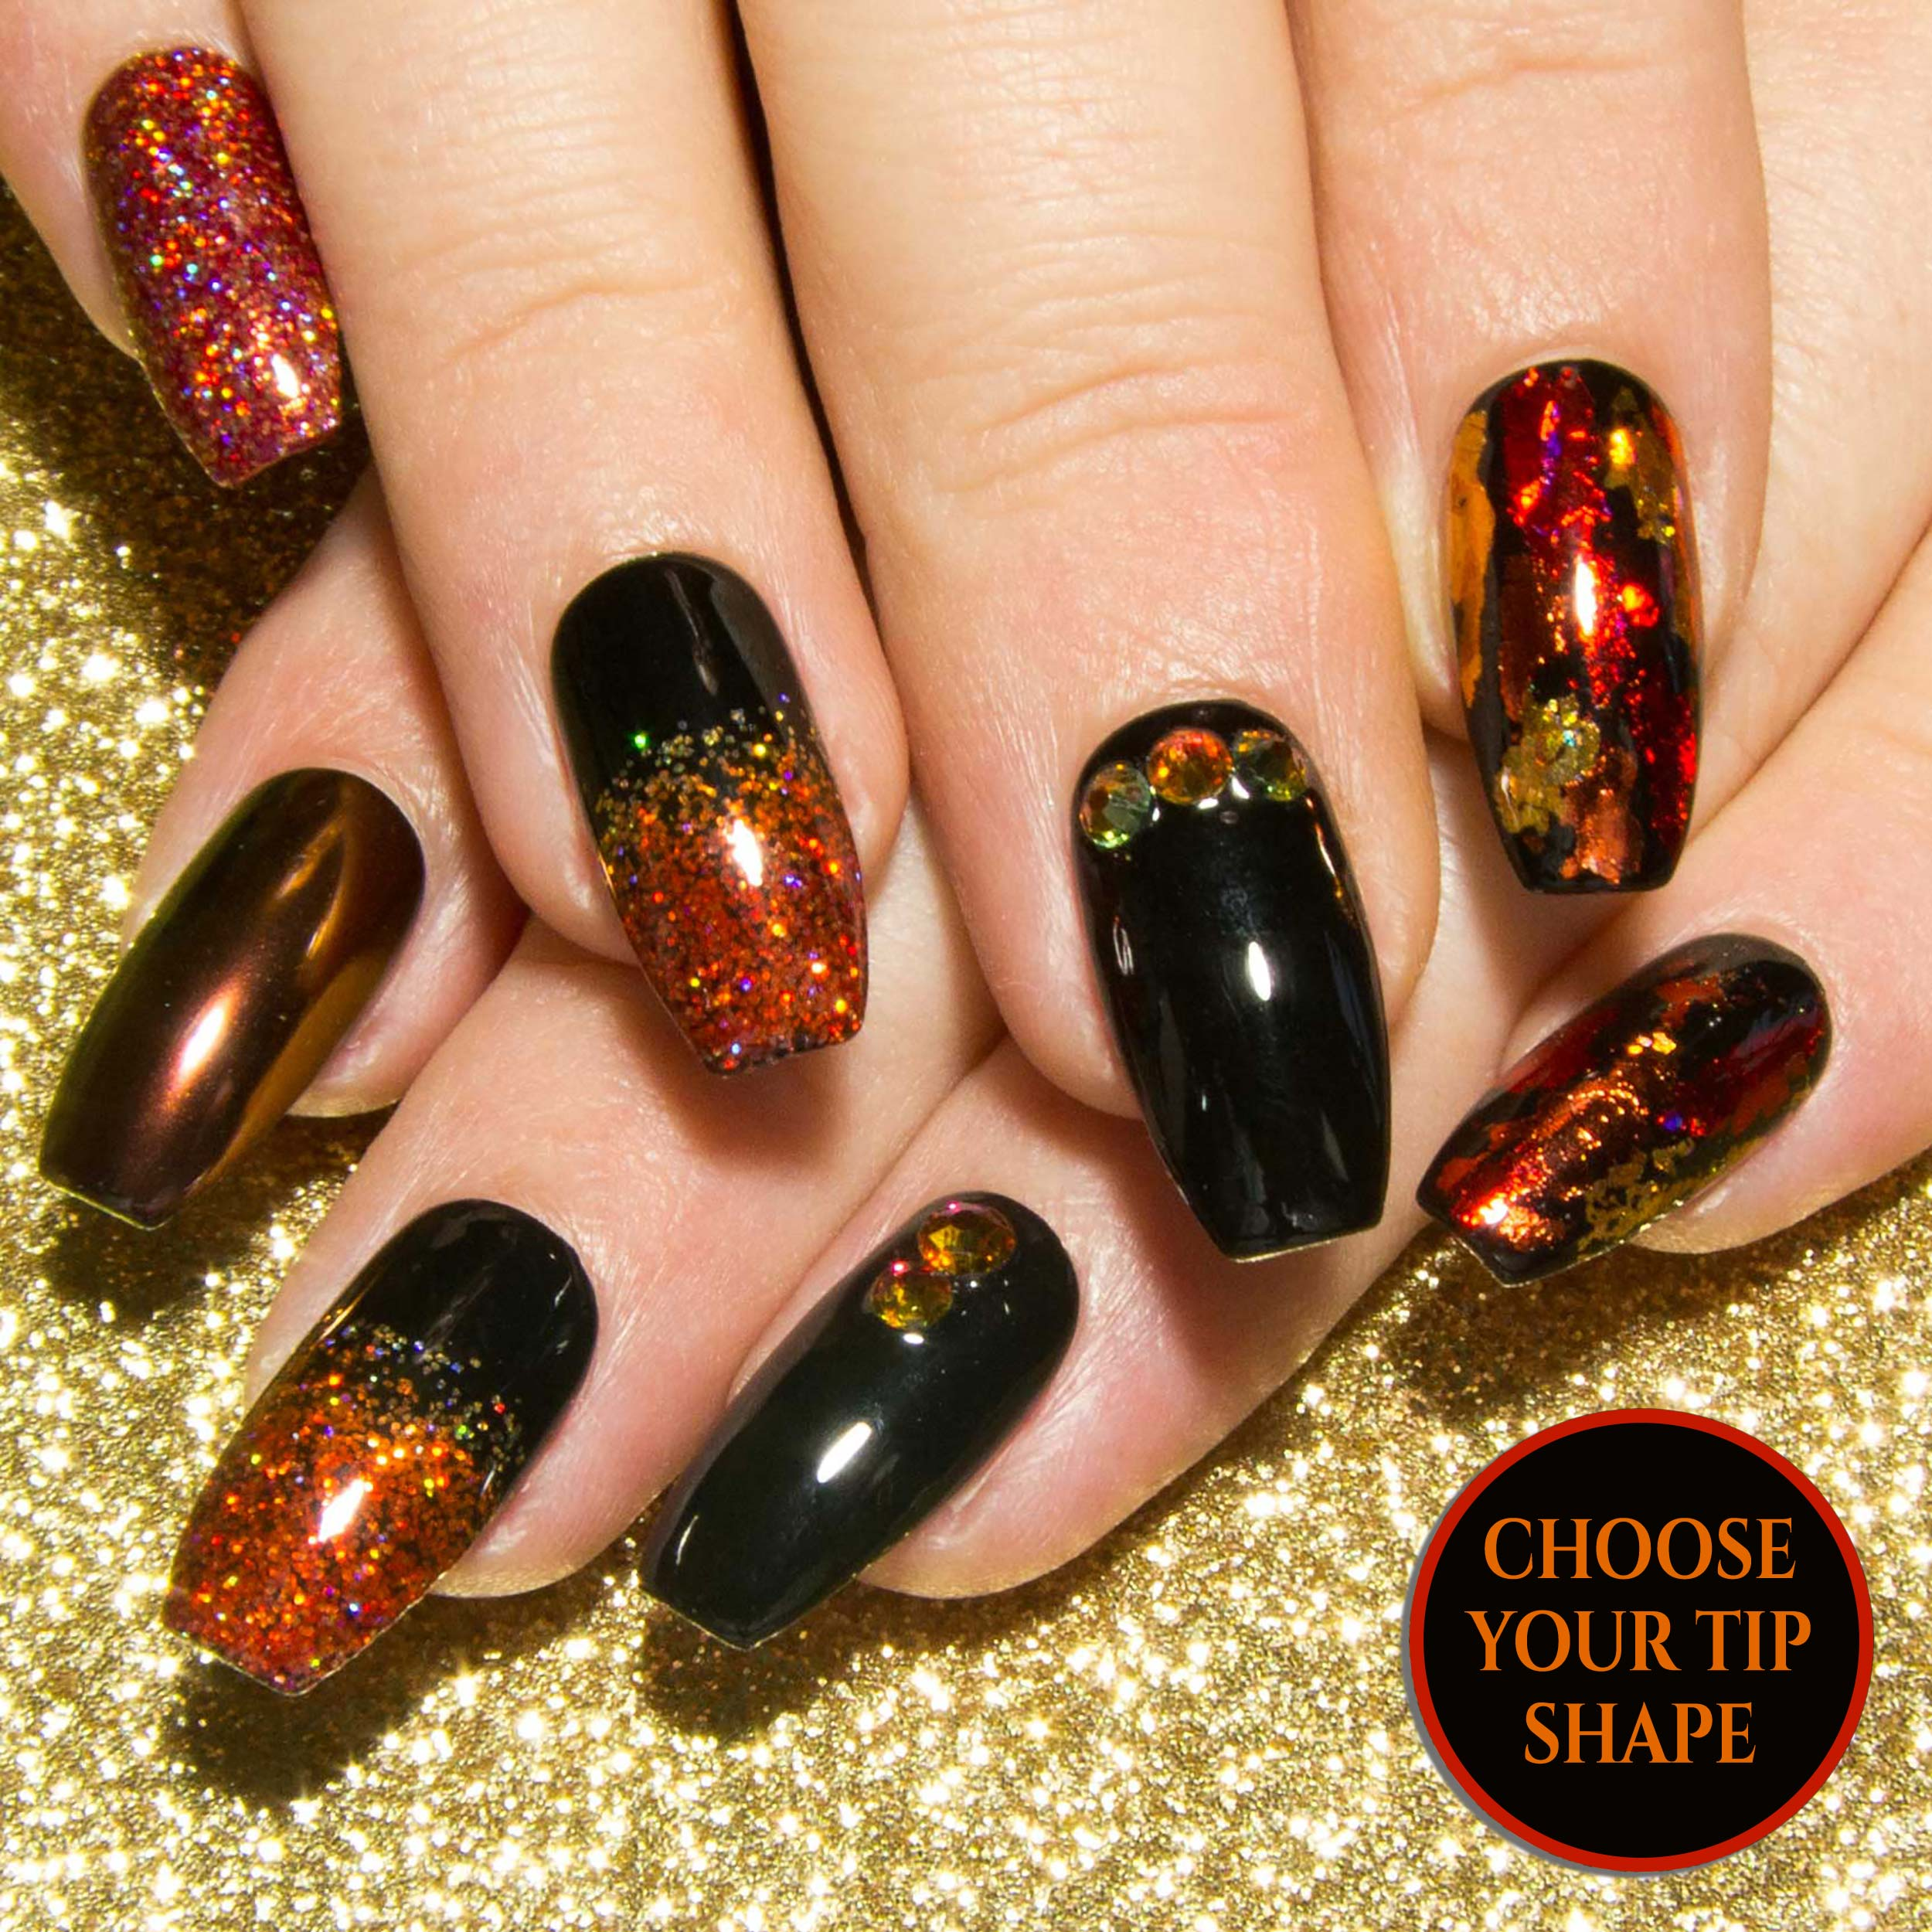 Coffin Nails Chrome Press On Nail Art Fire Crystals And Black Sarah S Sparkles Nails With thousands of pins on pinterest, it seems that i'm not alone. molten black red orange false nails with volcano crystals